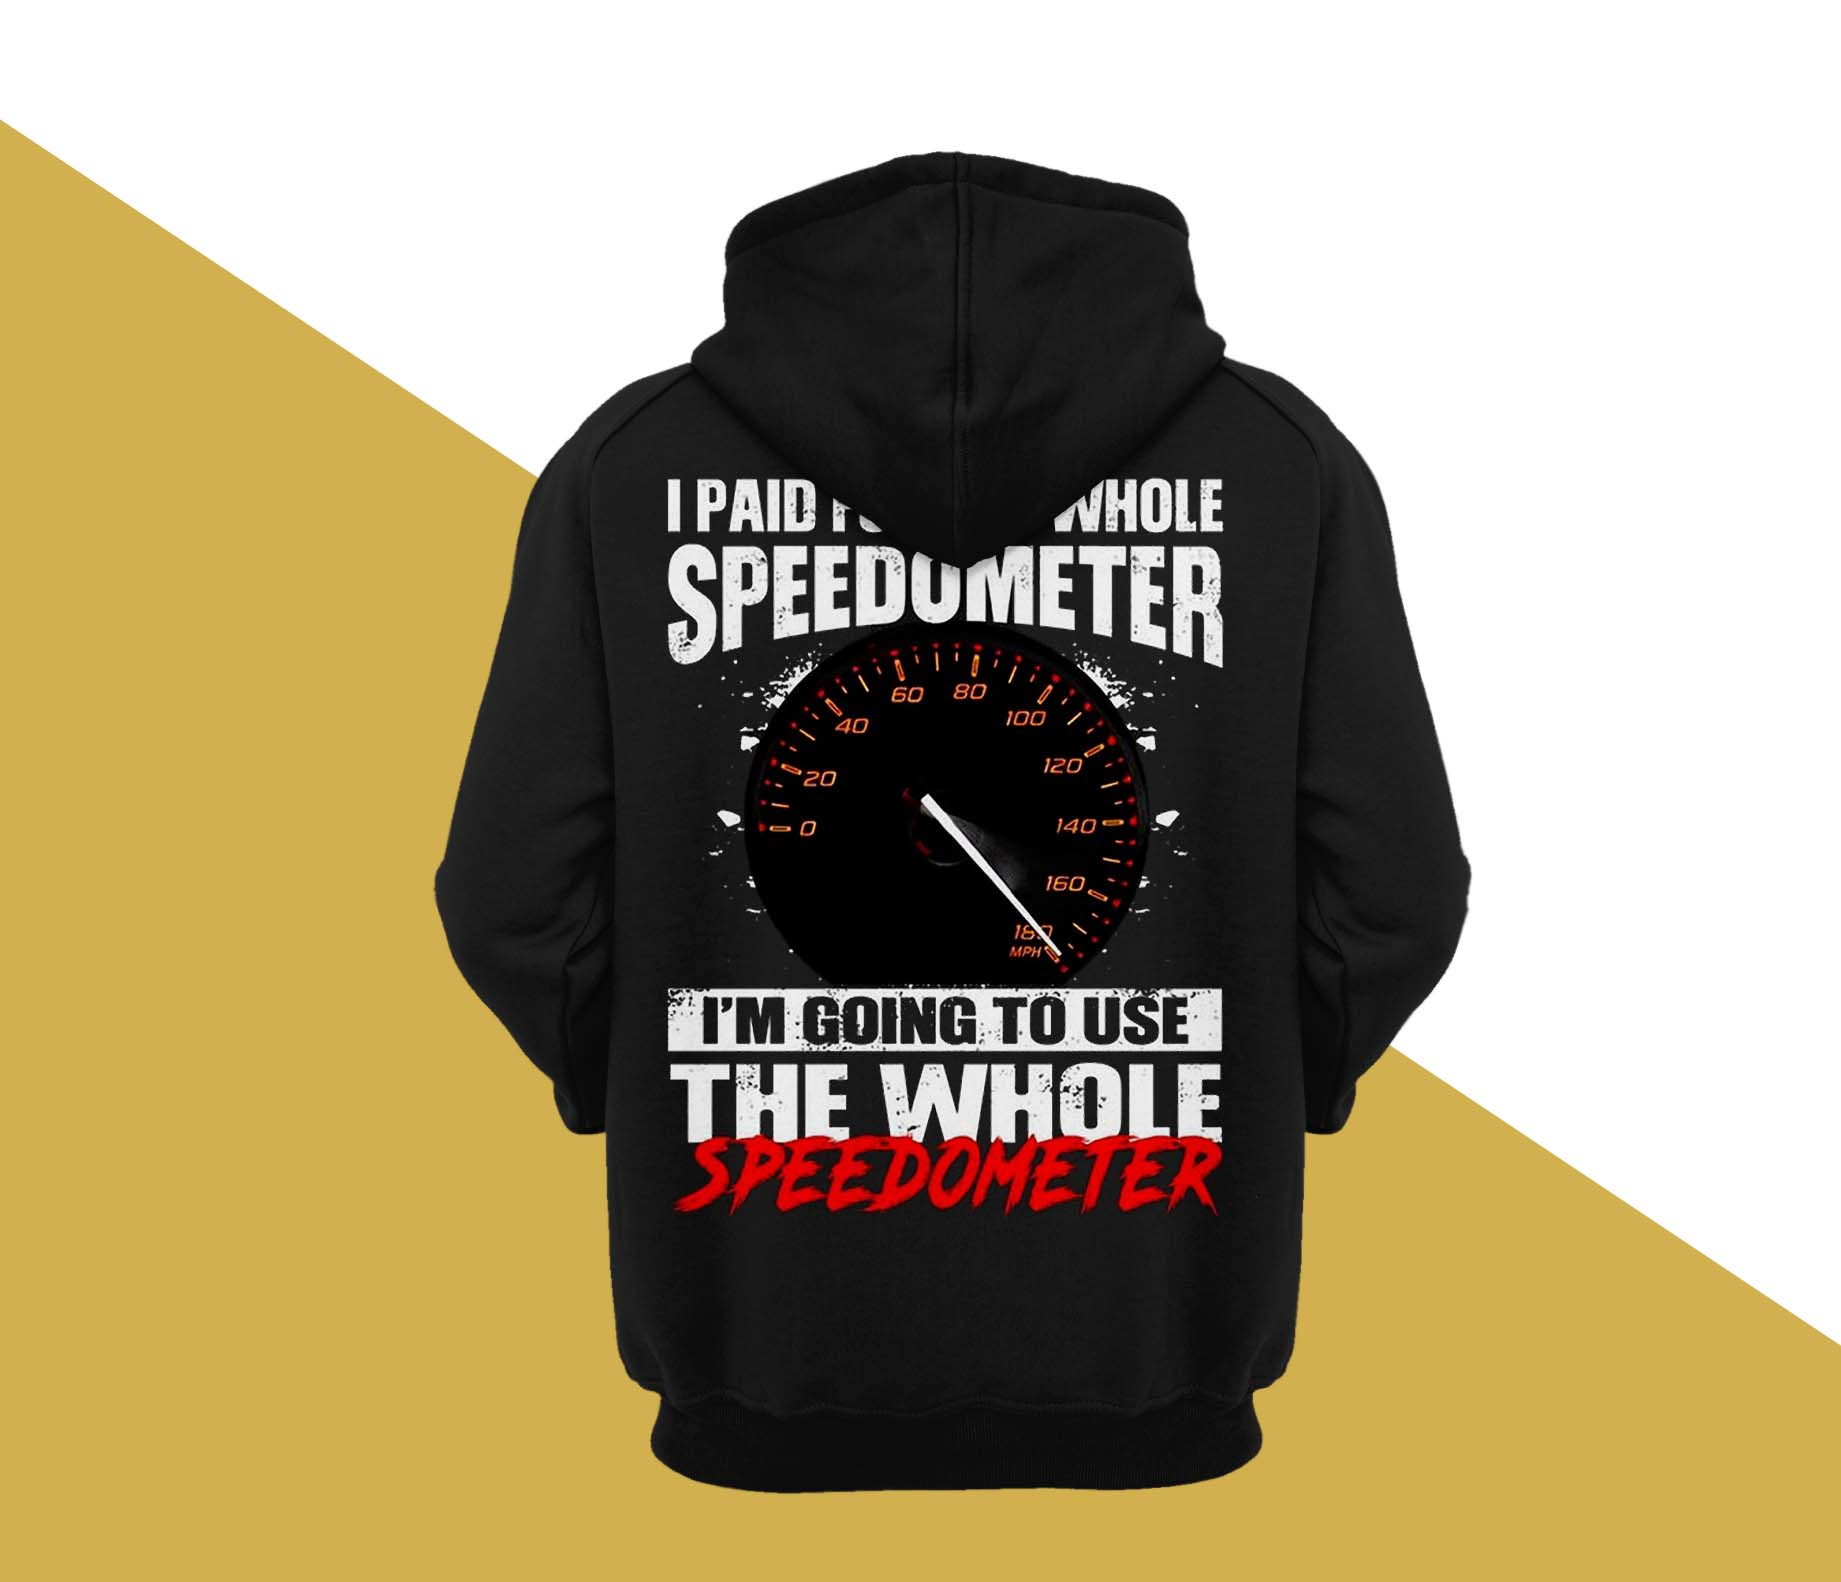 I paid for the whole speedometer im going to use the whole speedometer Shirt 21